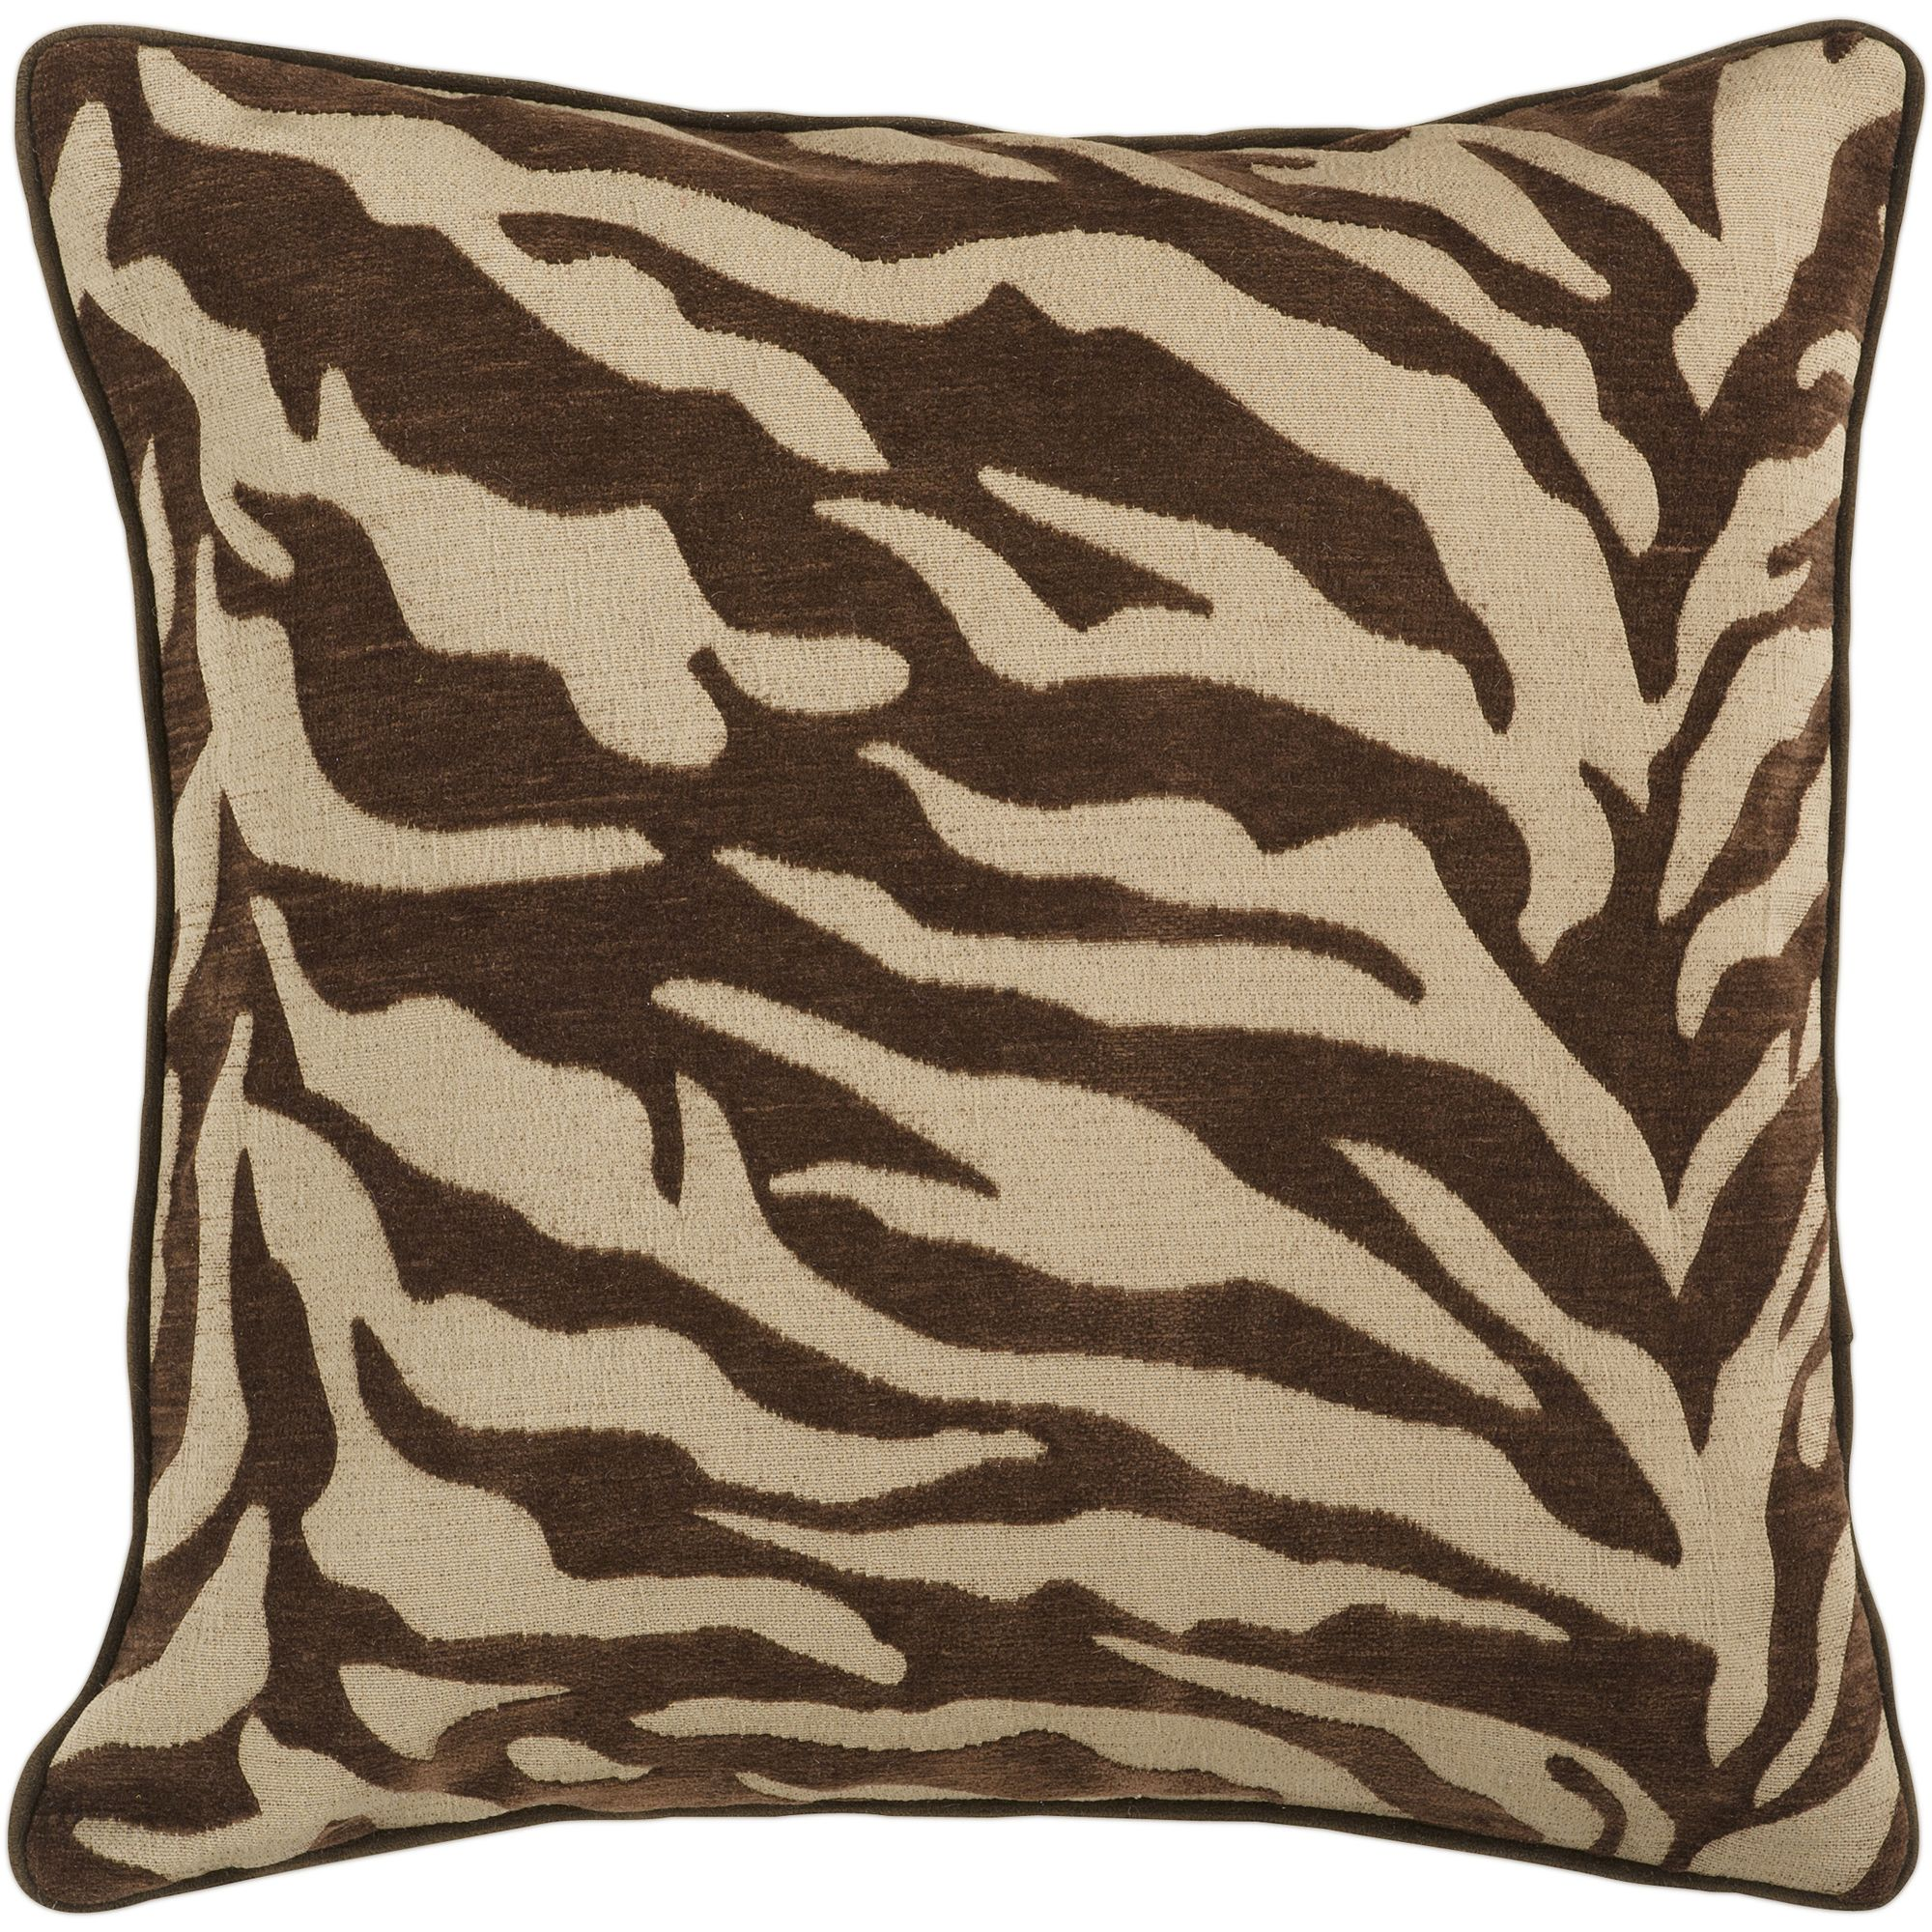 Art of Knot River Hand Crafted Zippy Zebra Decorative Pillow with Poly Filler, Chocolate